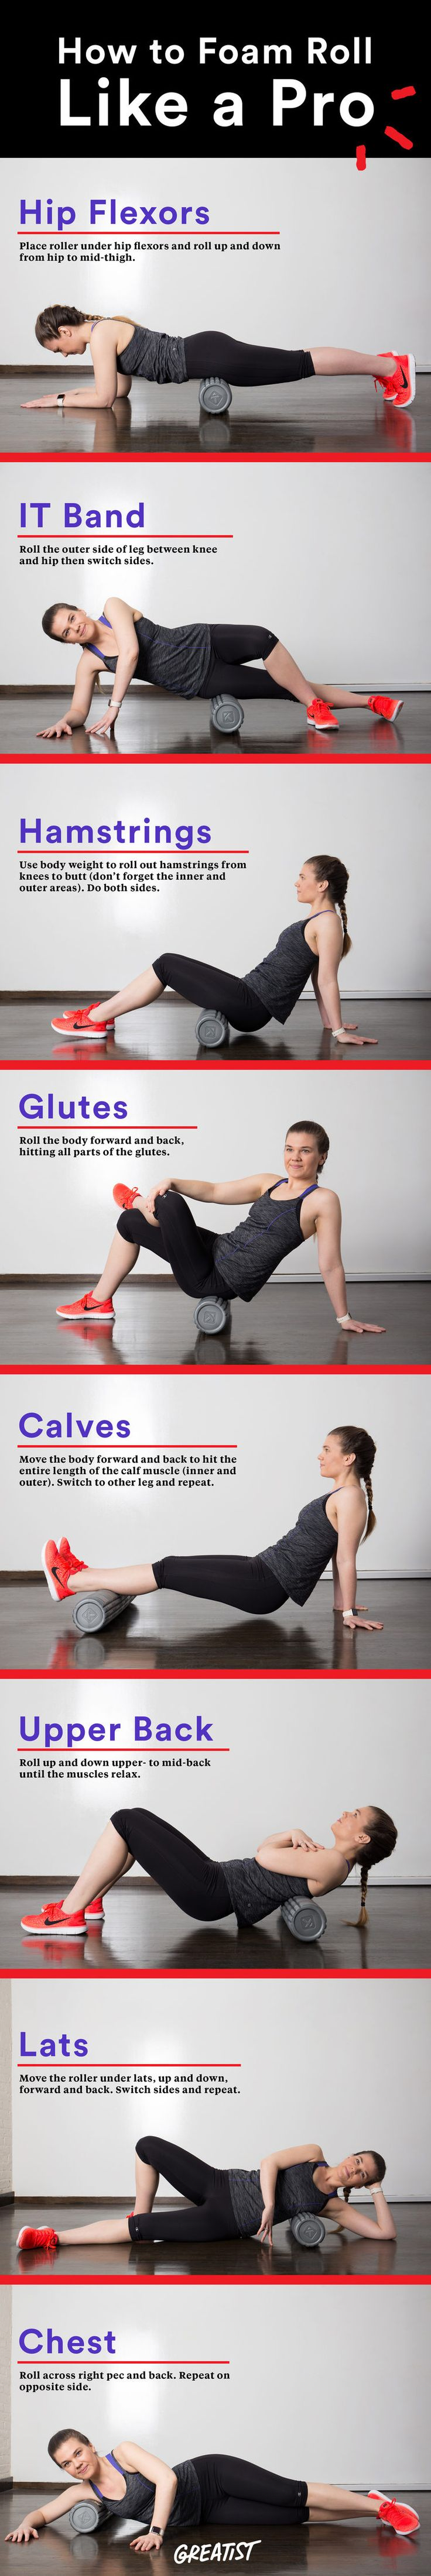 Want to improve flexibility, performance, and reduce injuries? Get to know the foam roller.  #fitness https://greatist.com/fitness/how-foam-roll-pro